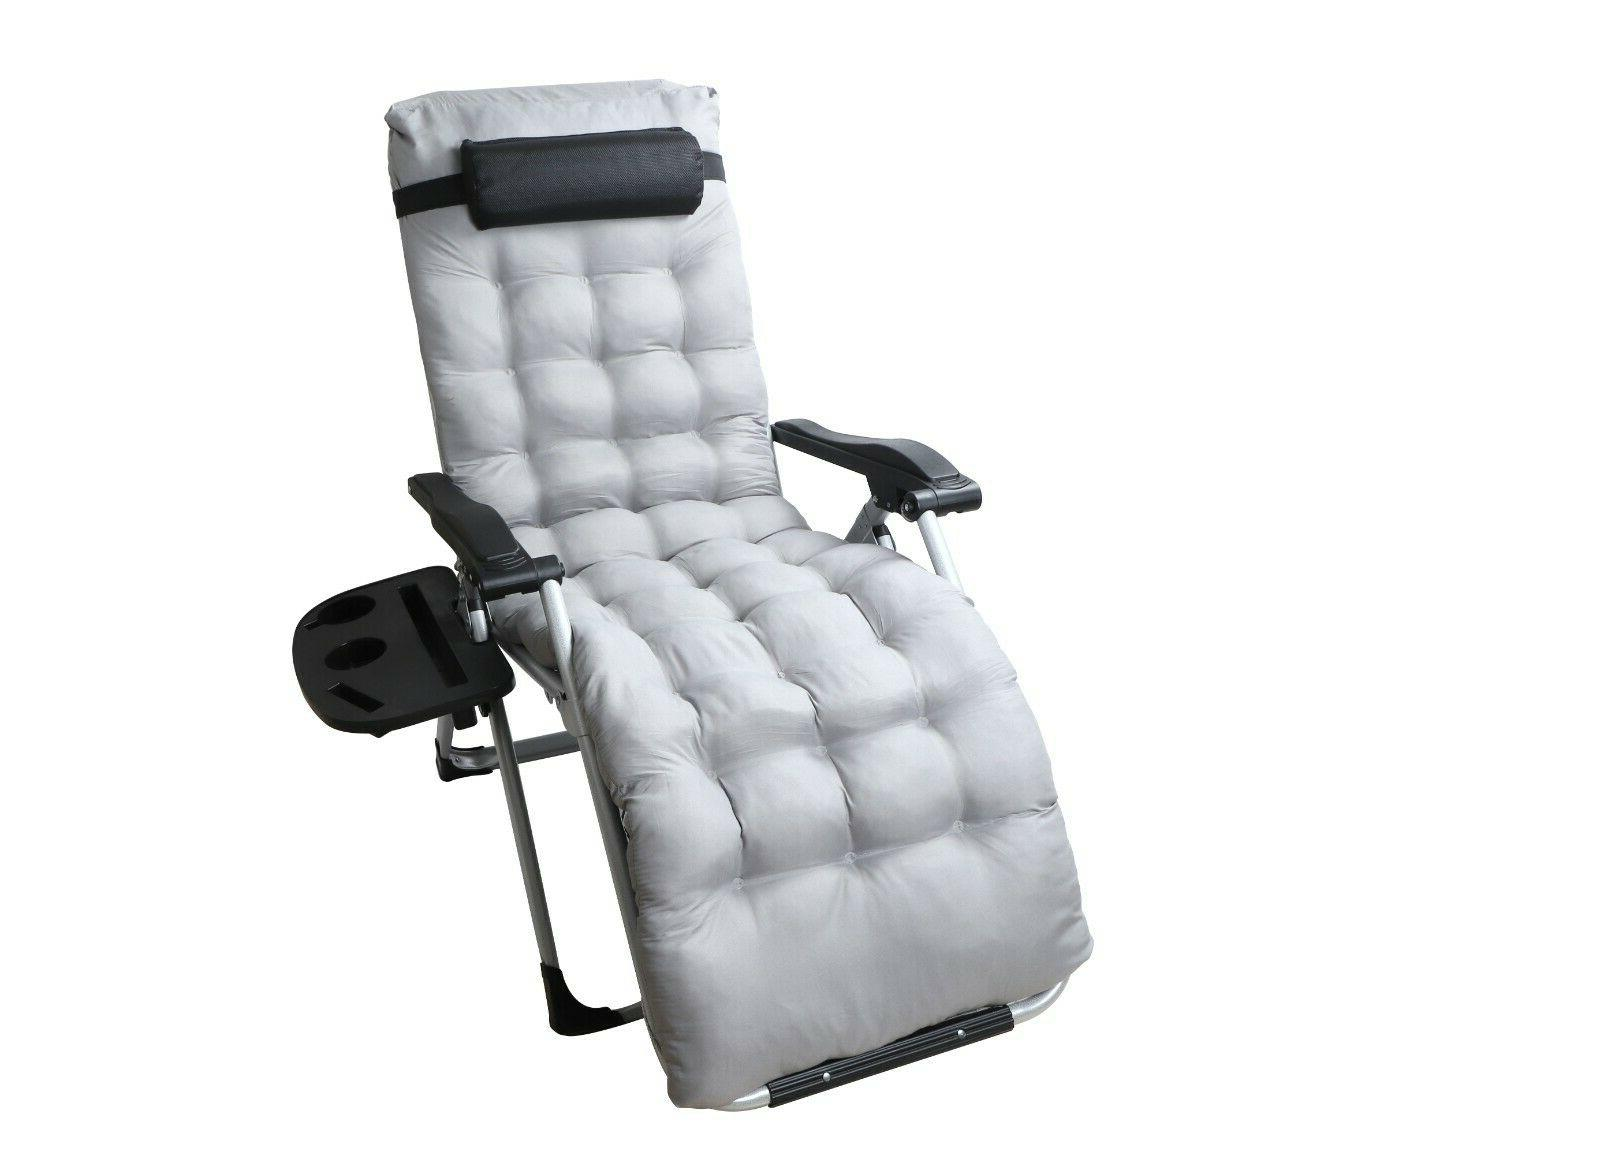 Coco Gravity Chair Adjustable Reclining Folding Ship